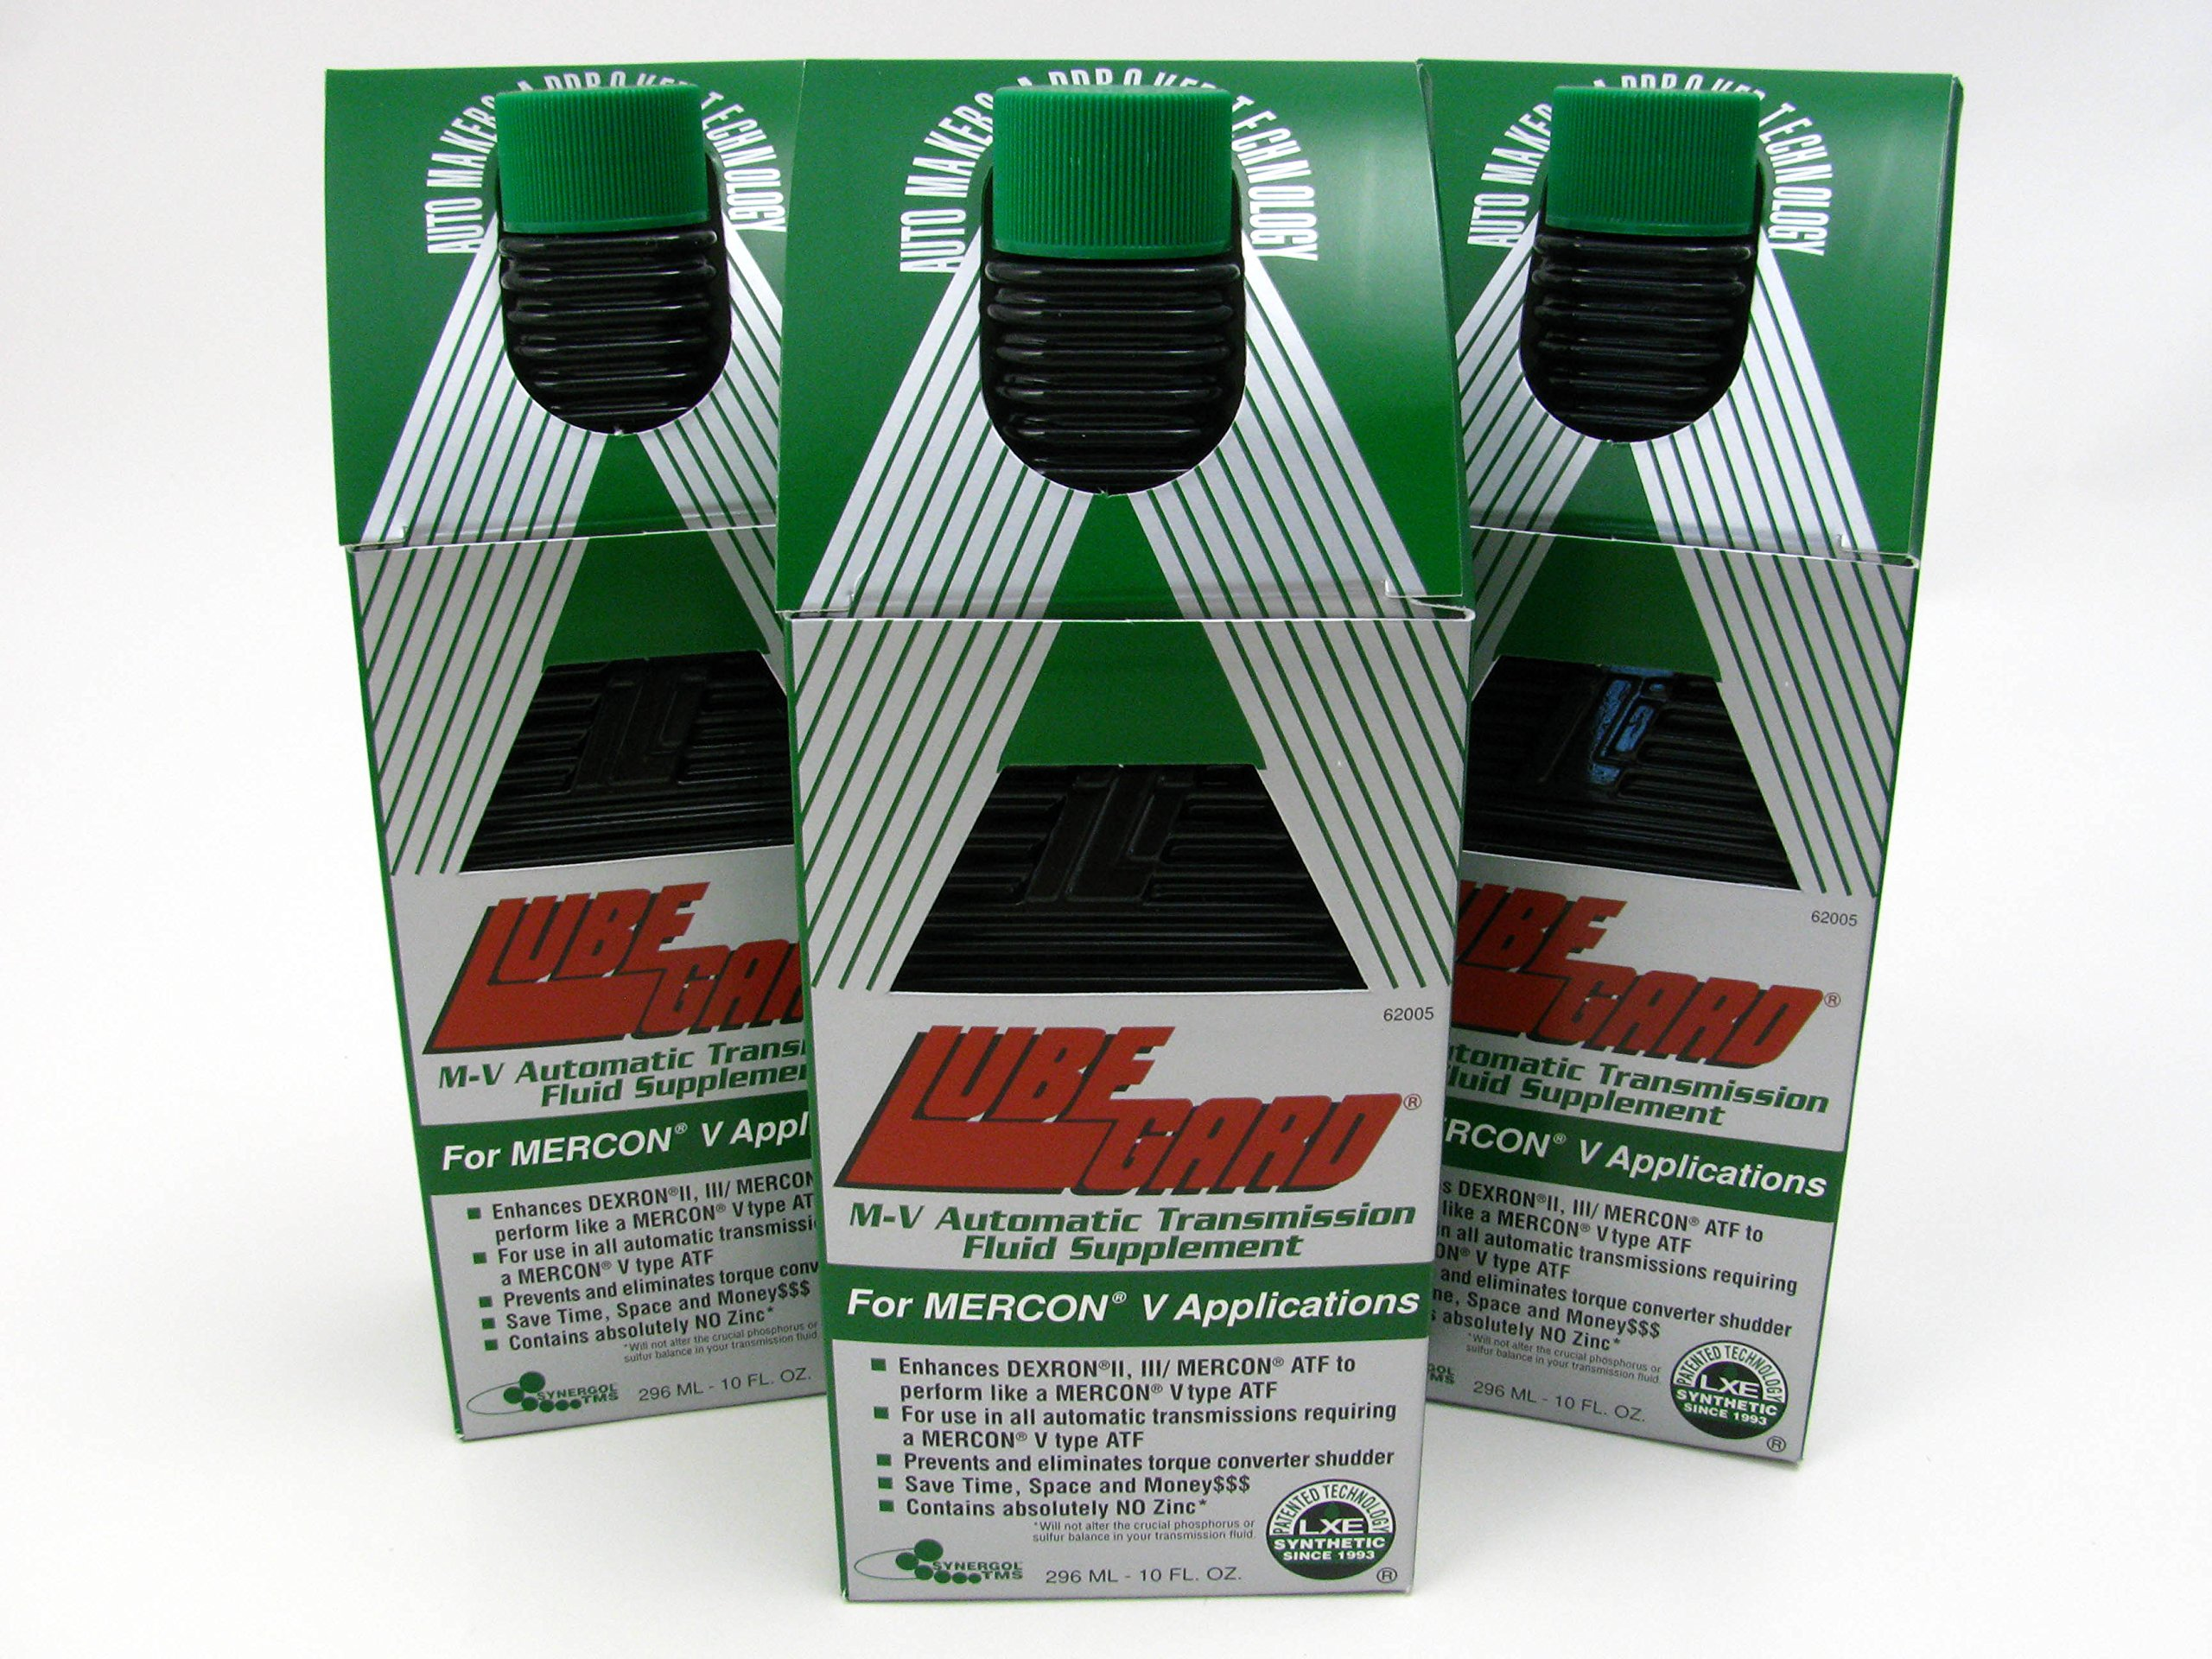 LUBEGARD M-V Automatic Transmission Oil Fluid Supplement Mercon-V Synthetic ATF 3 pack